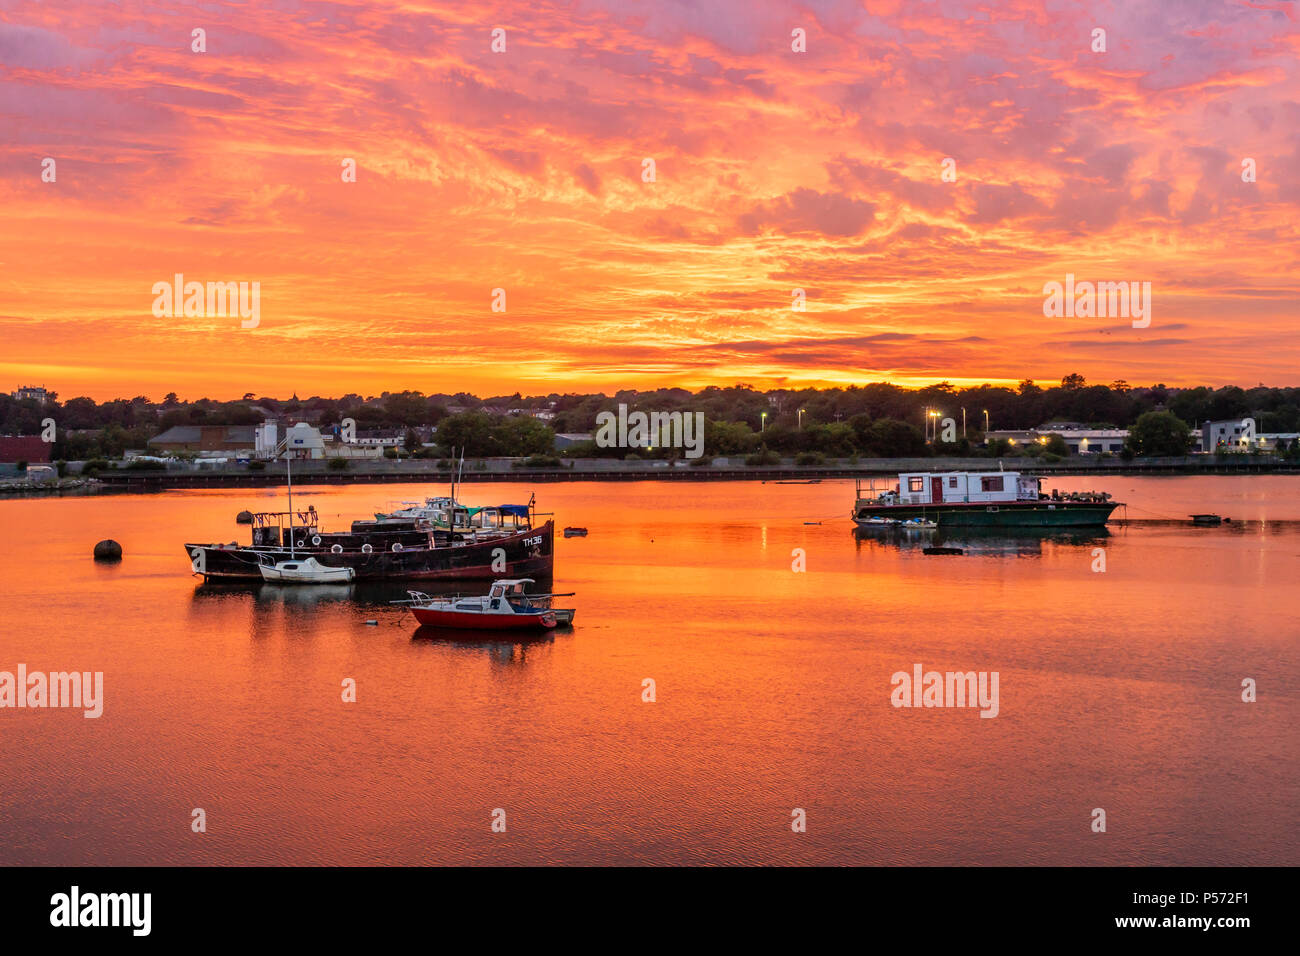 Spectacular golden sunset over Itchen River in Northam, Southampton, England, UK - Stock Image